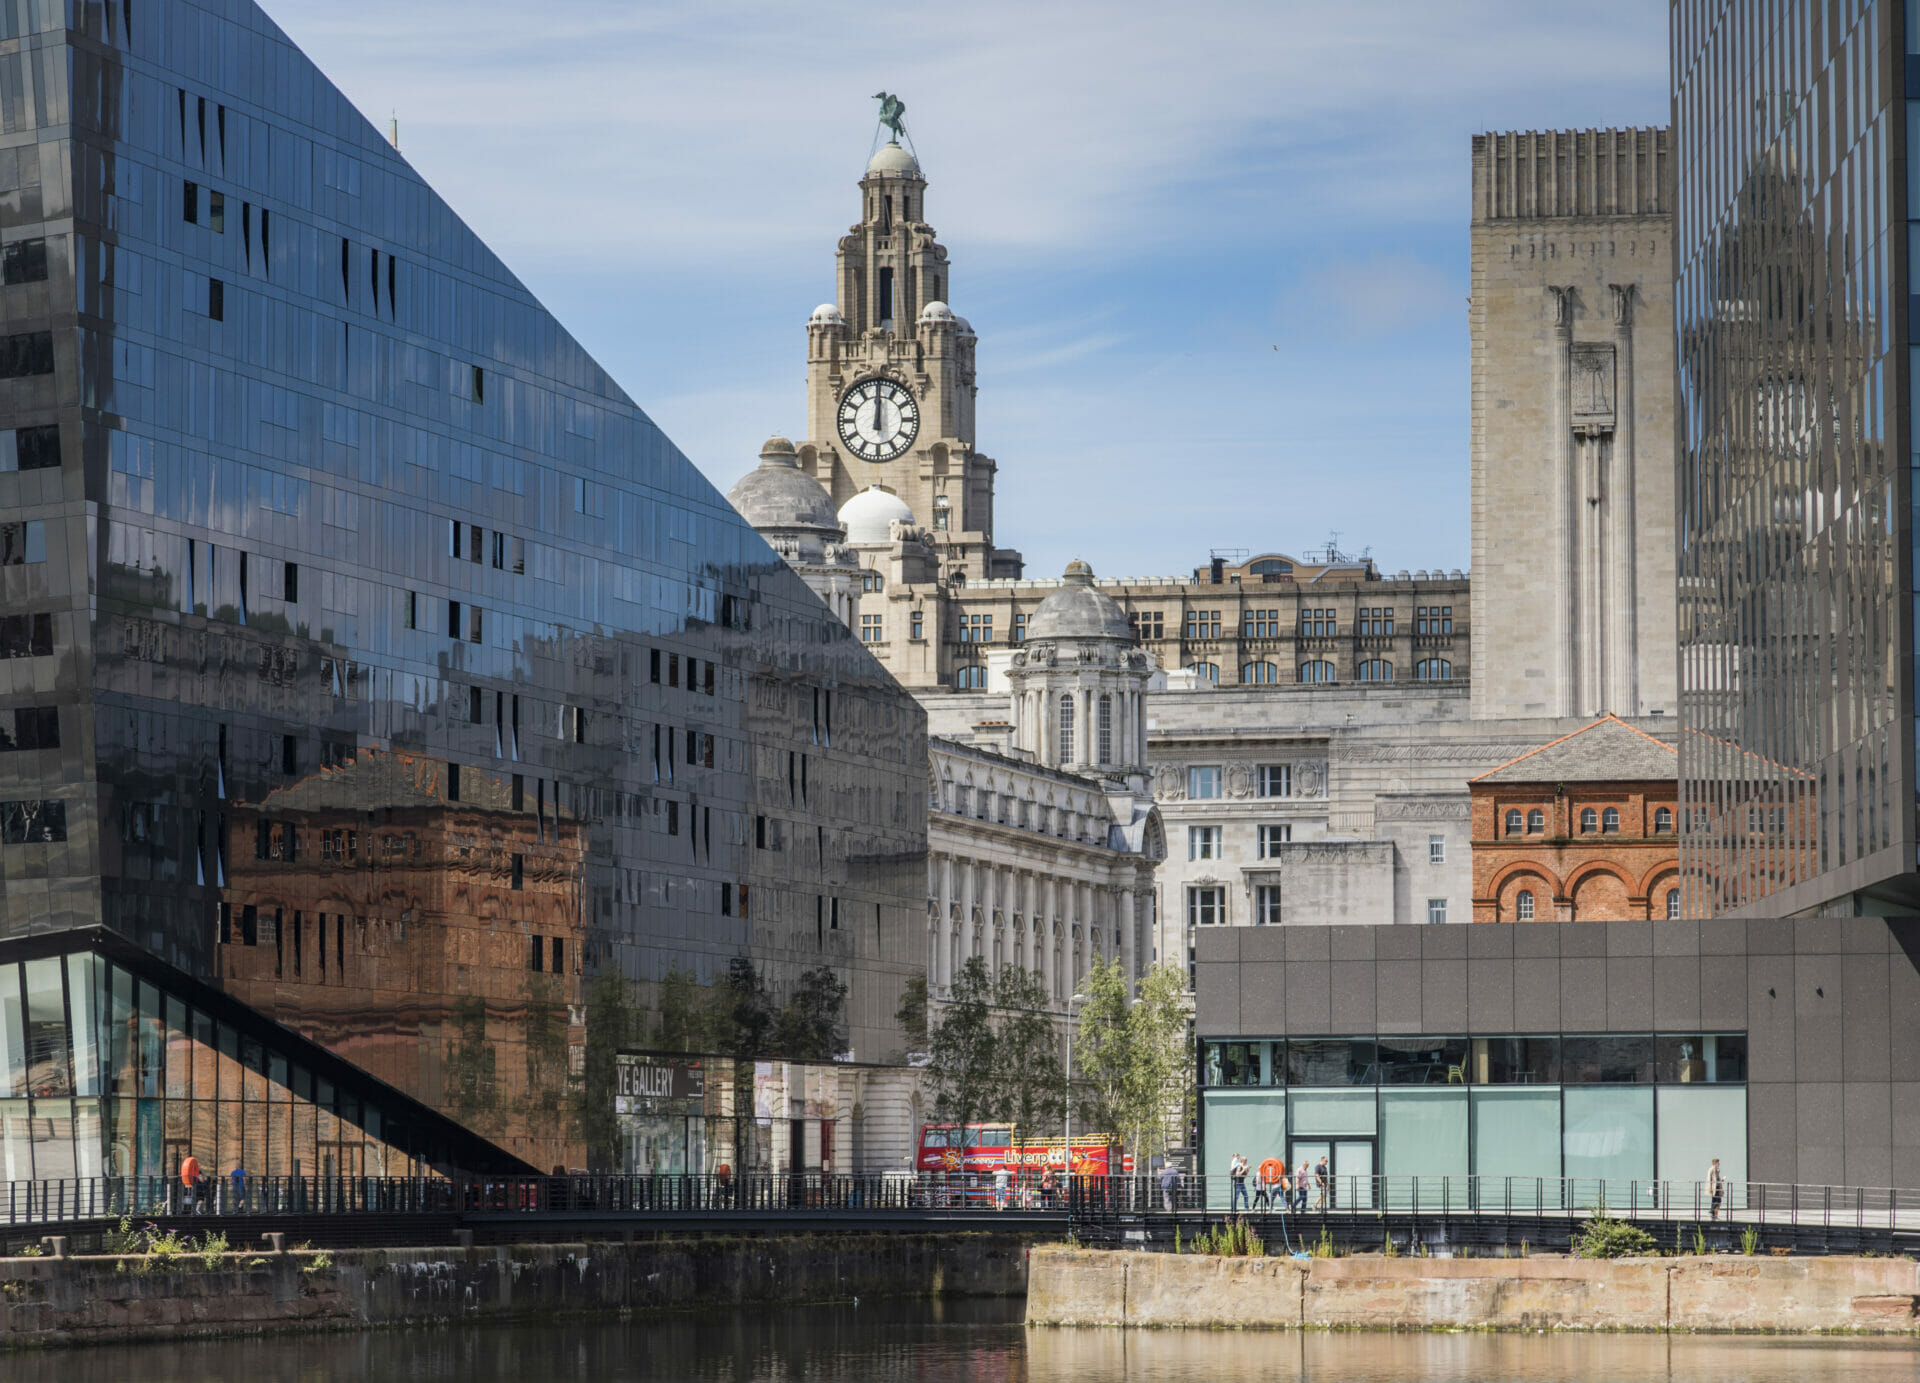 Photograph of building in Liverpool including. Taken on a Welshot Photographic Academy workshop